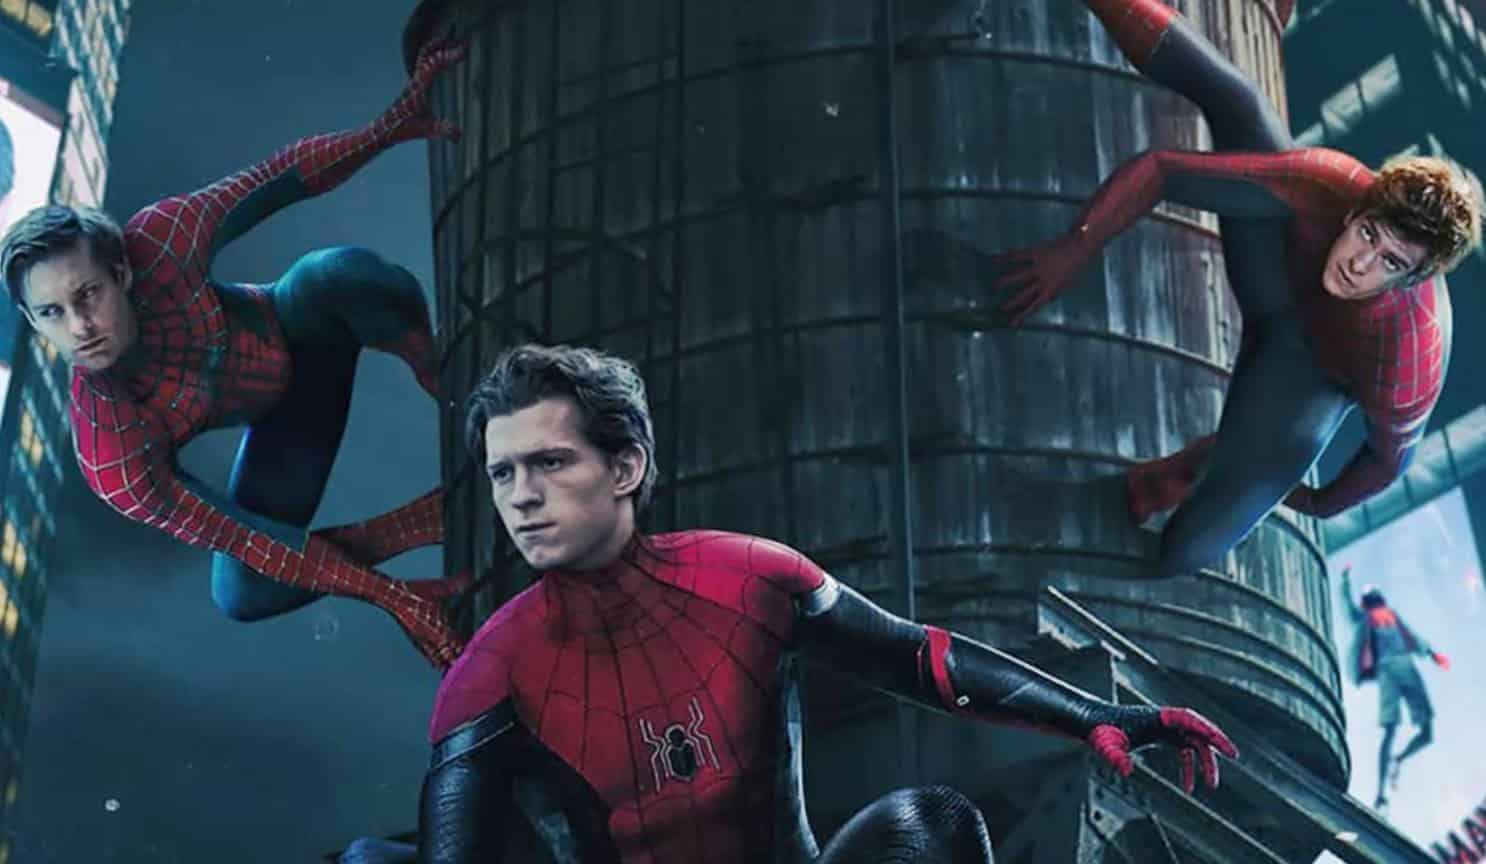 Marvel roping in Tobey Maguire, Andrew Garfield with Tom Holland for 'Spider-Man 3'